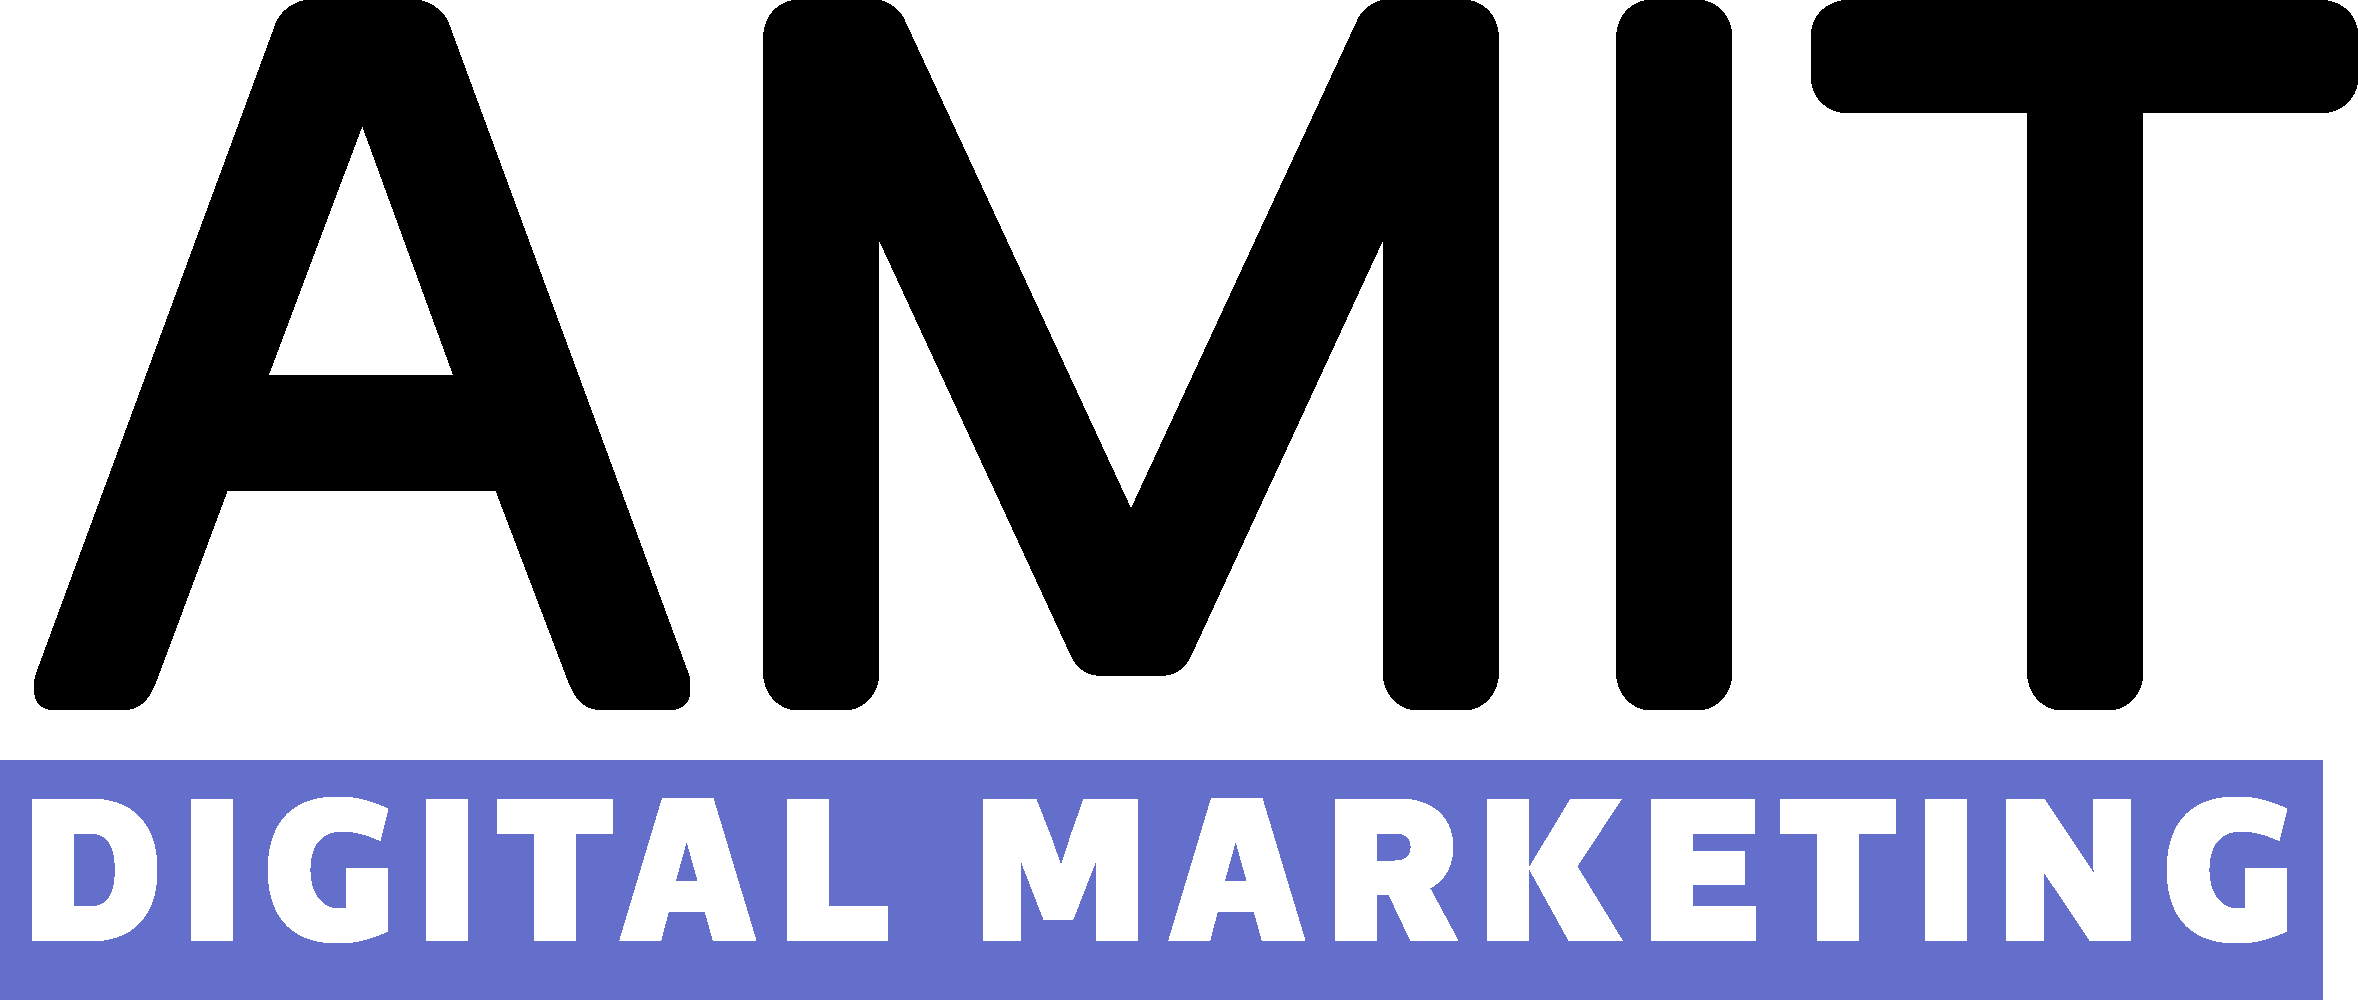 """Amit Digital Marketing (soon to re-brand to """"The Links Guy"""") logo"""